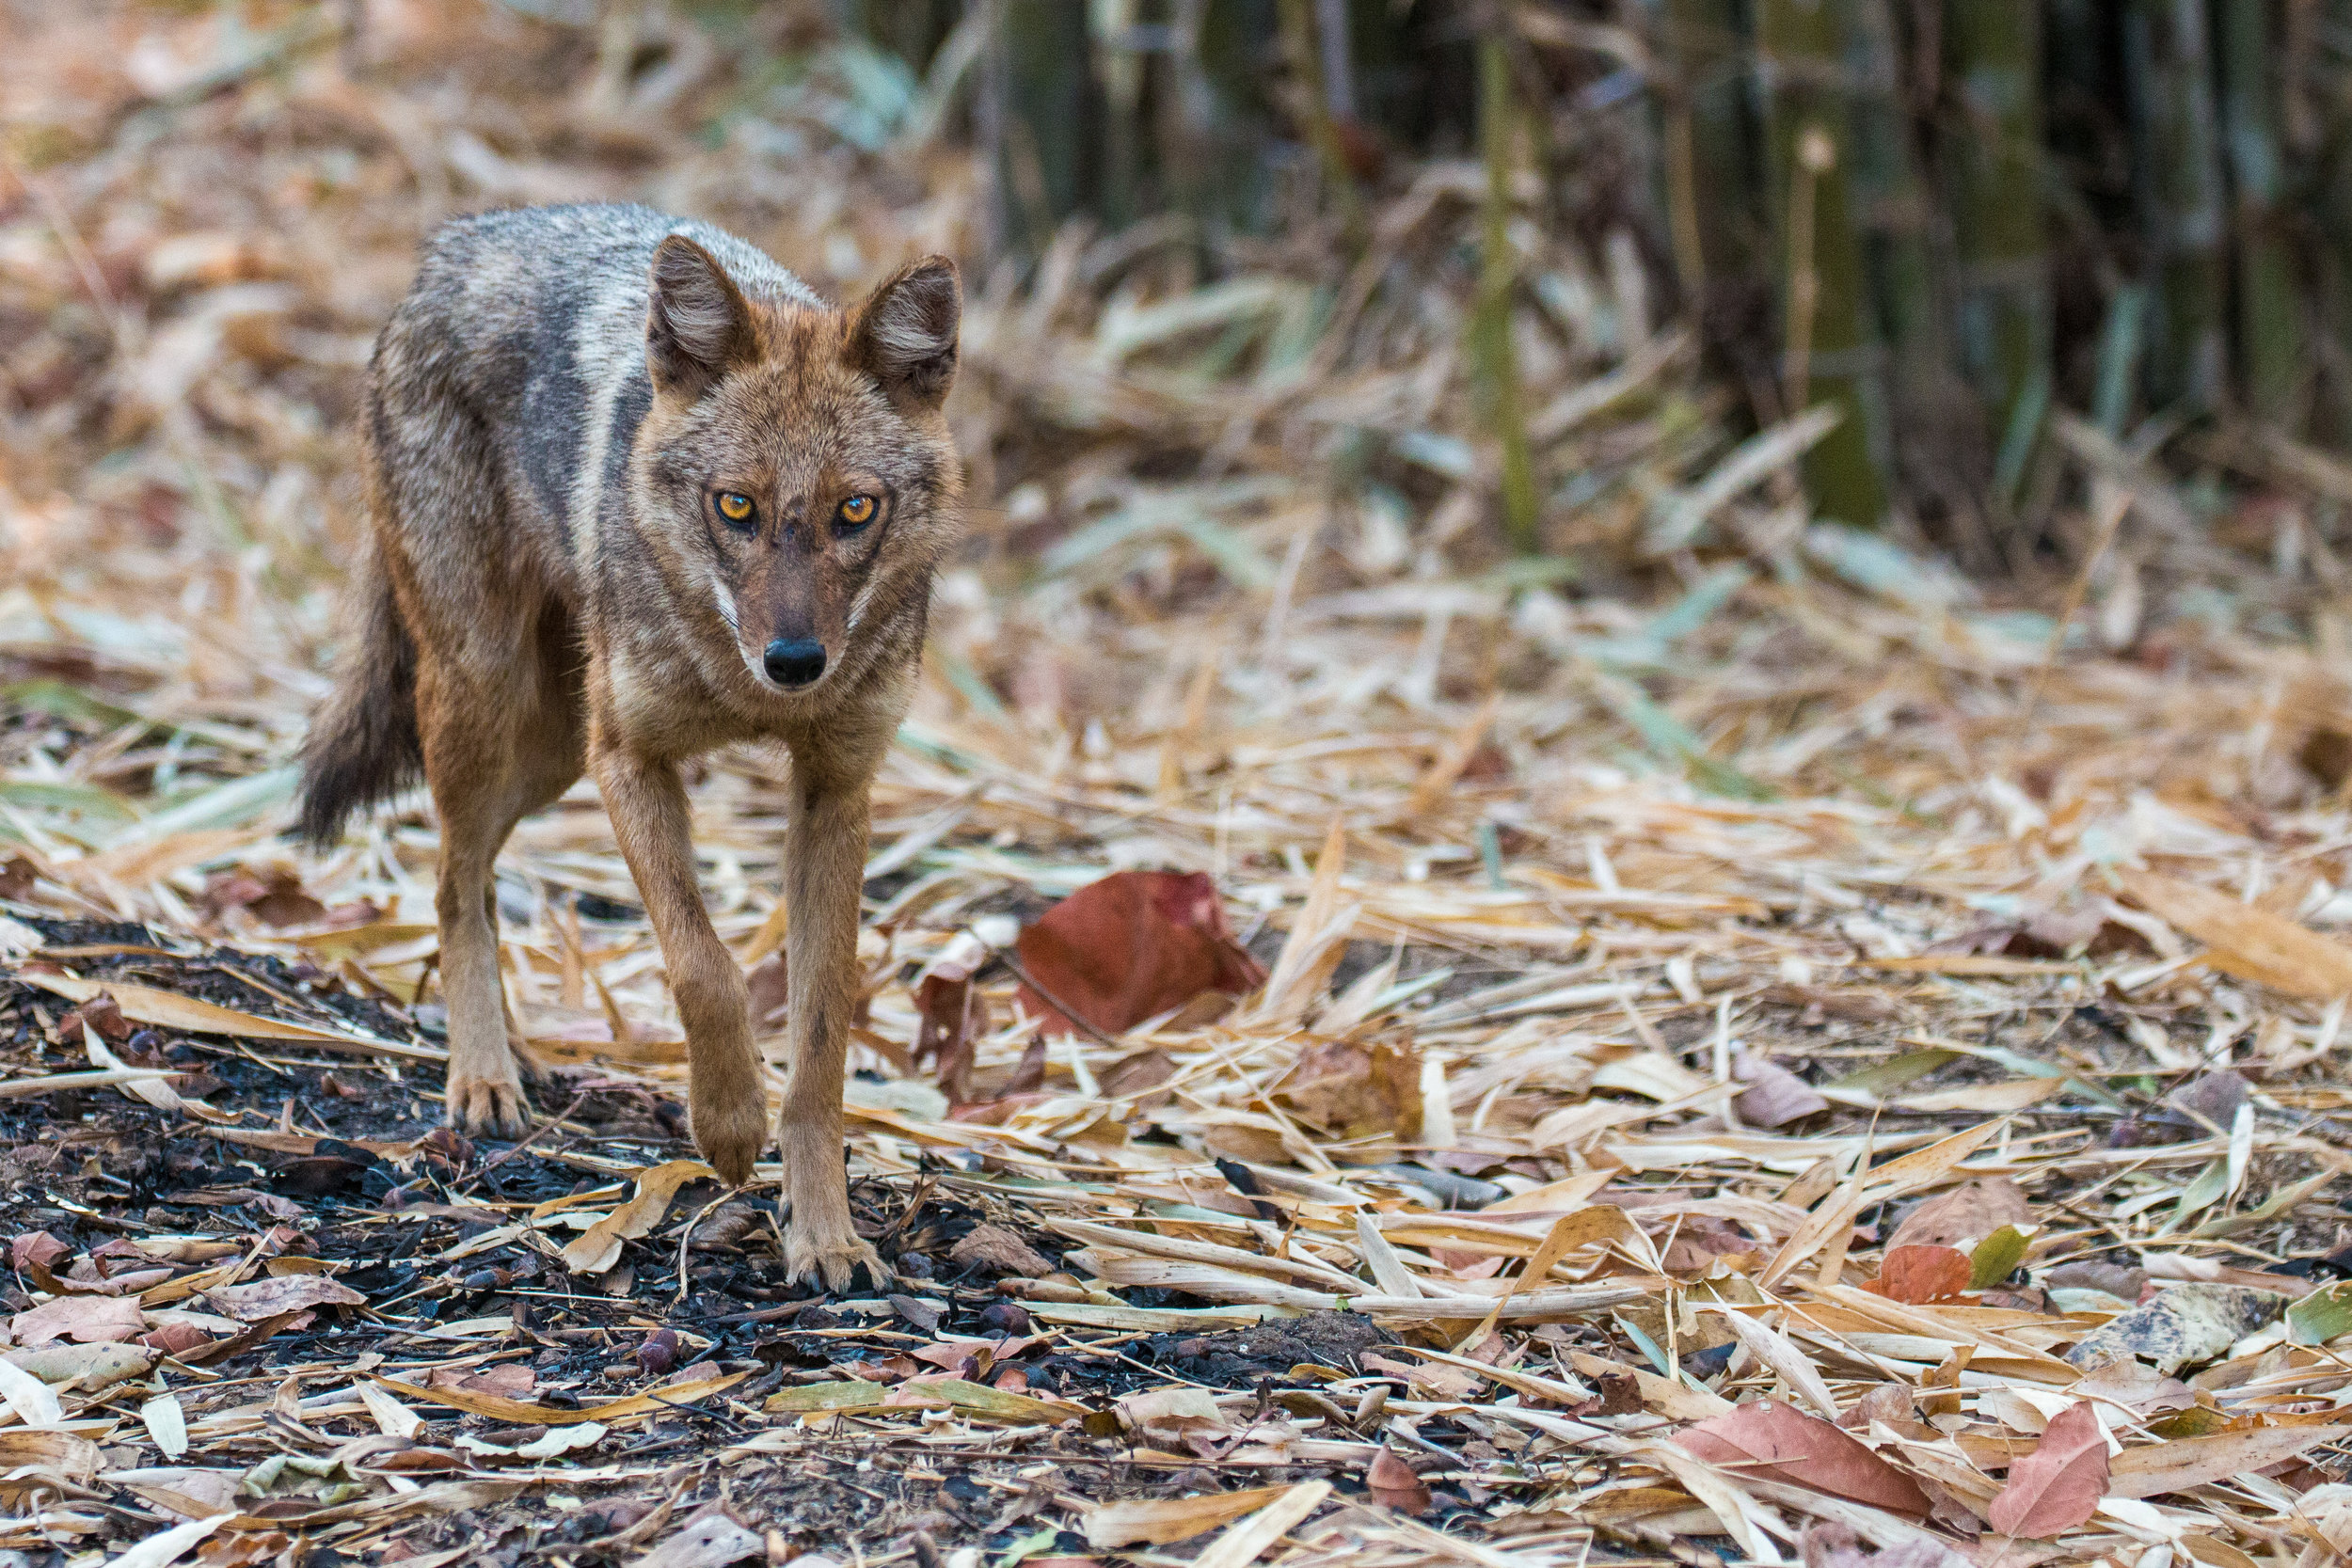 Jackal on the prowl in the early morning light.